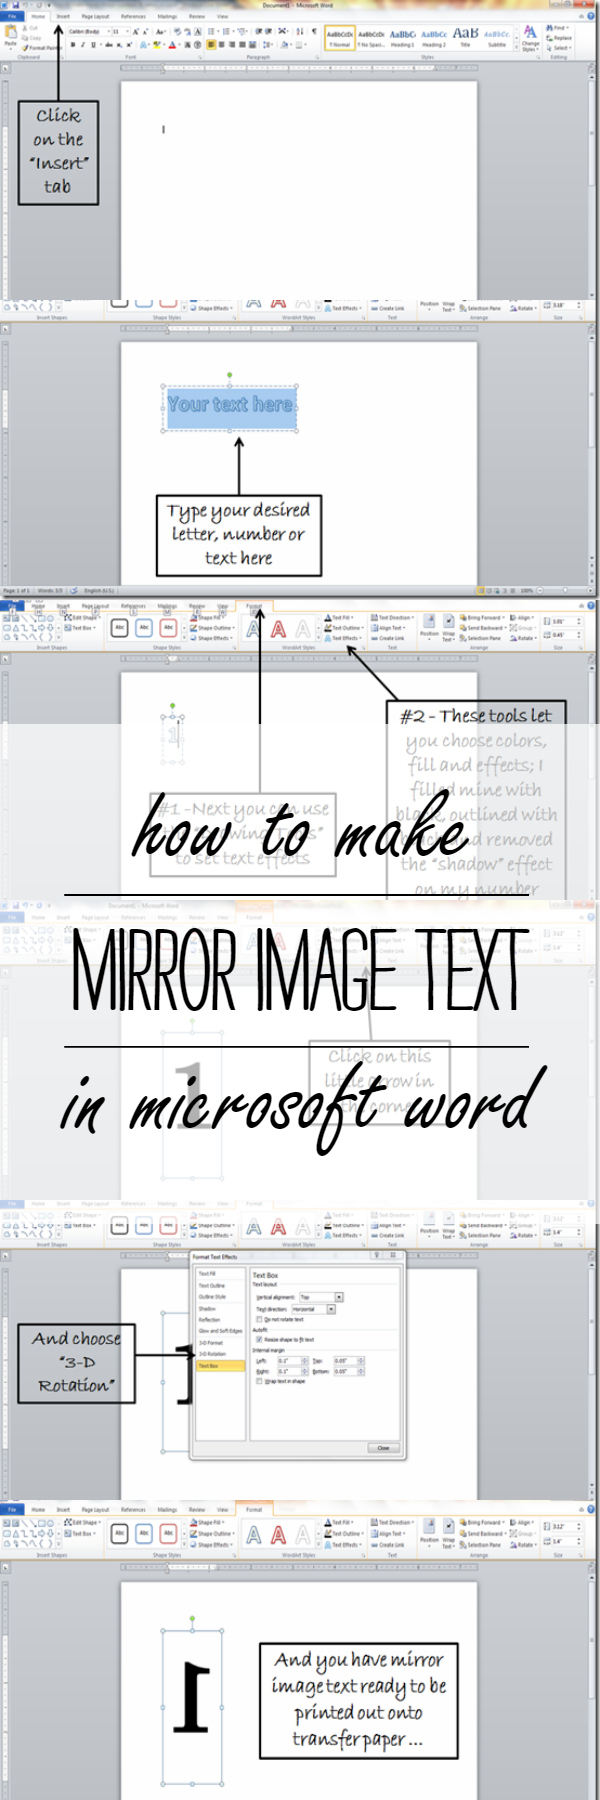 How To Make Mirror Image Text In Microsoft Word - Free Printable Mirrored Numbers